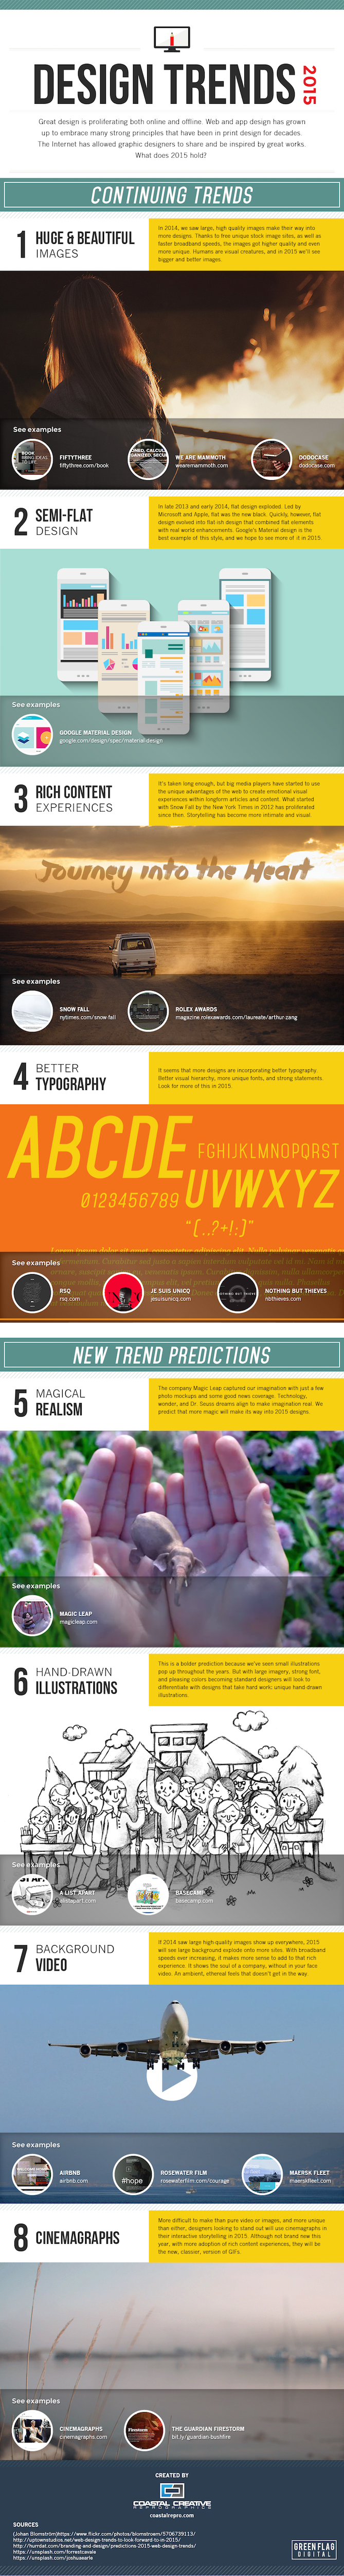 design-trends-2015-infographic